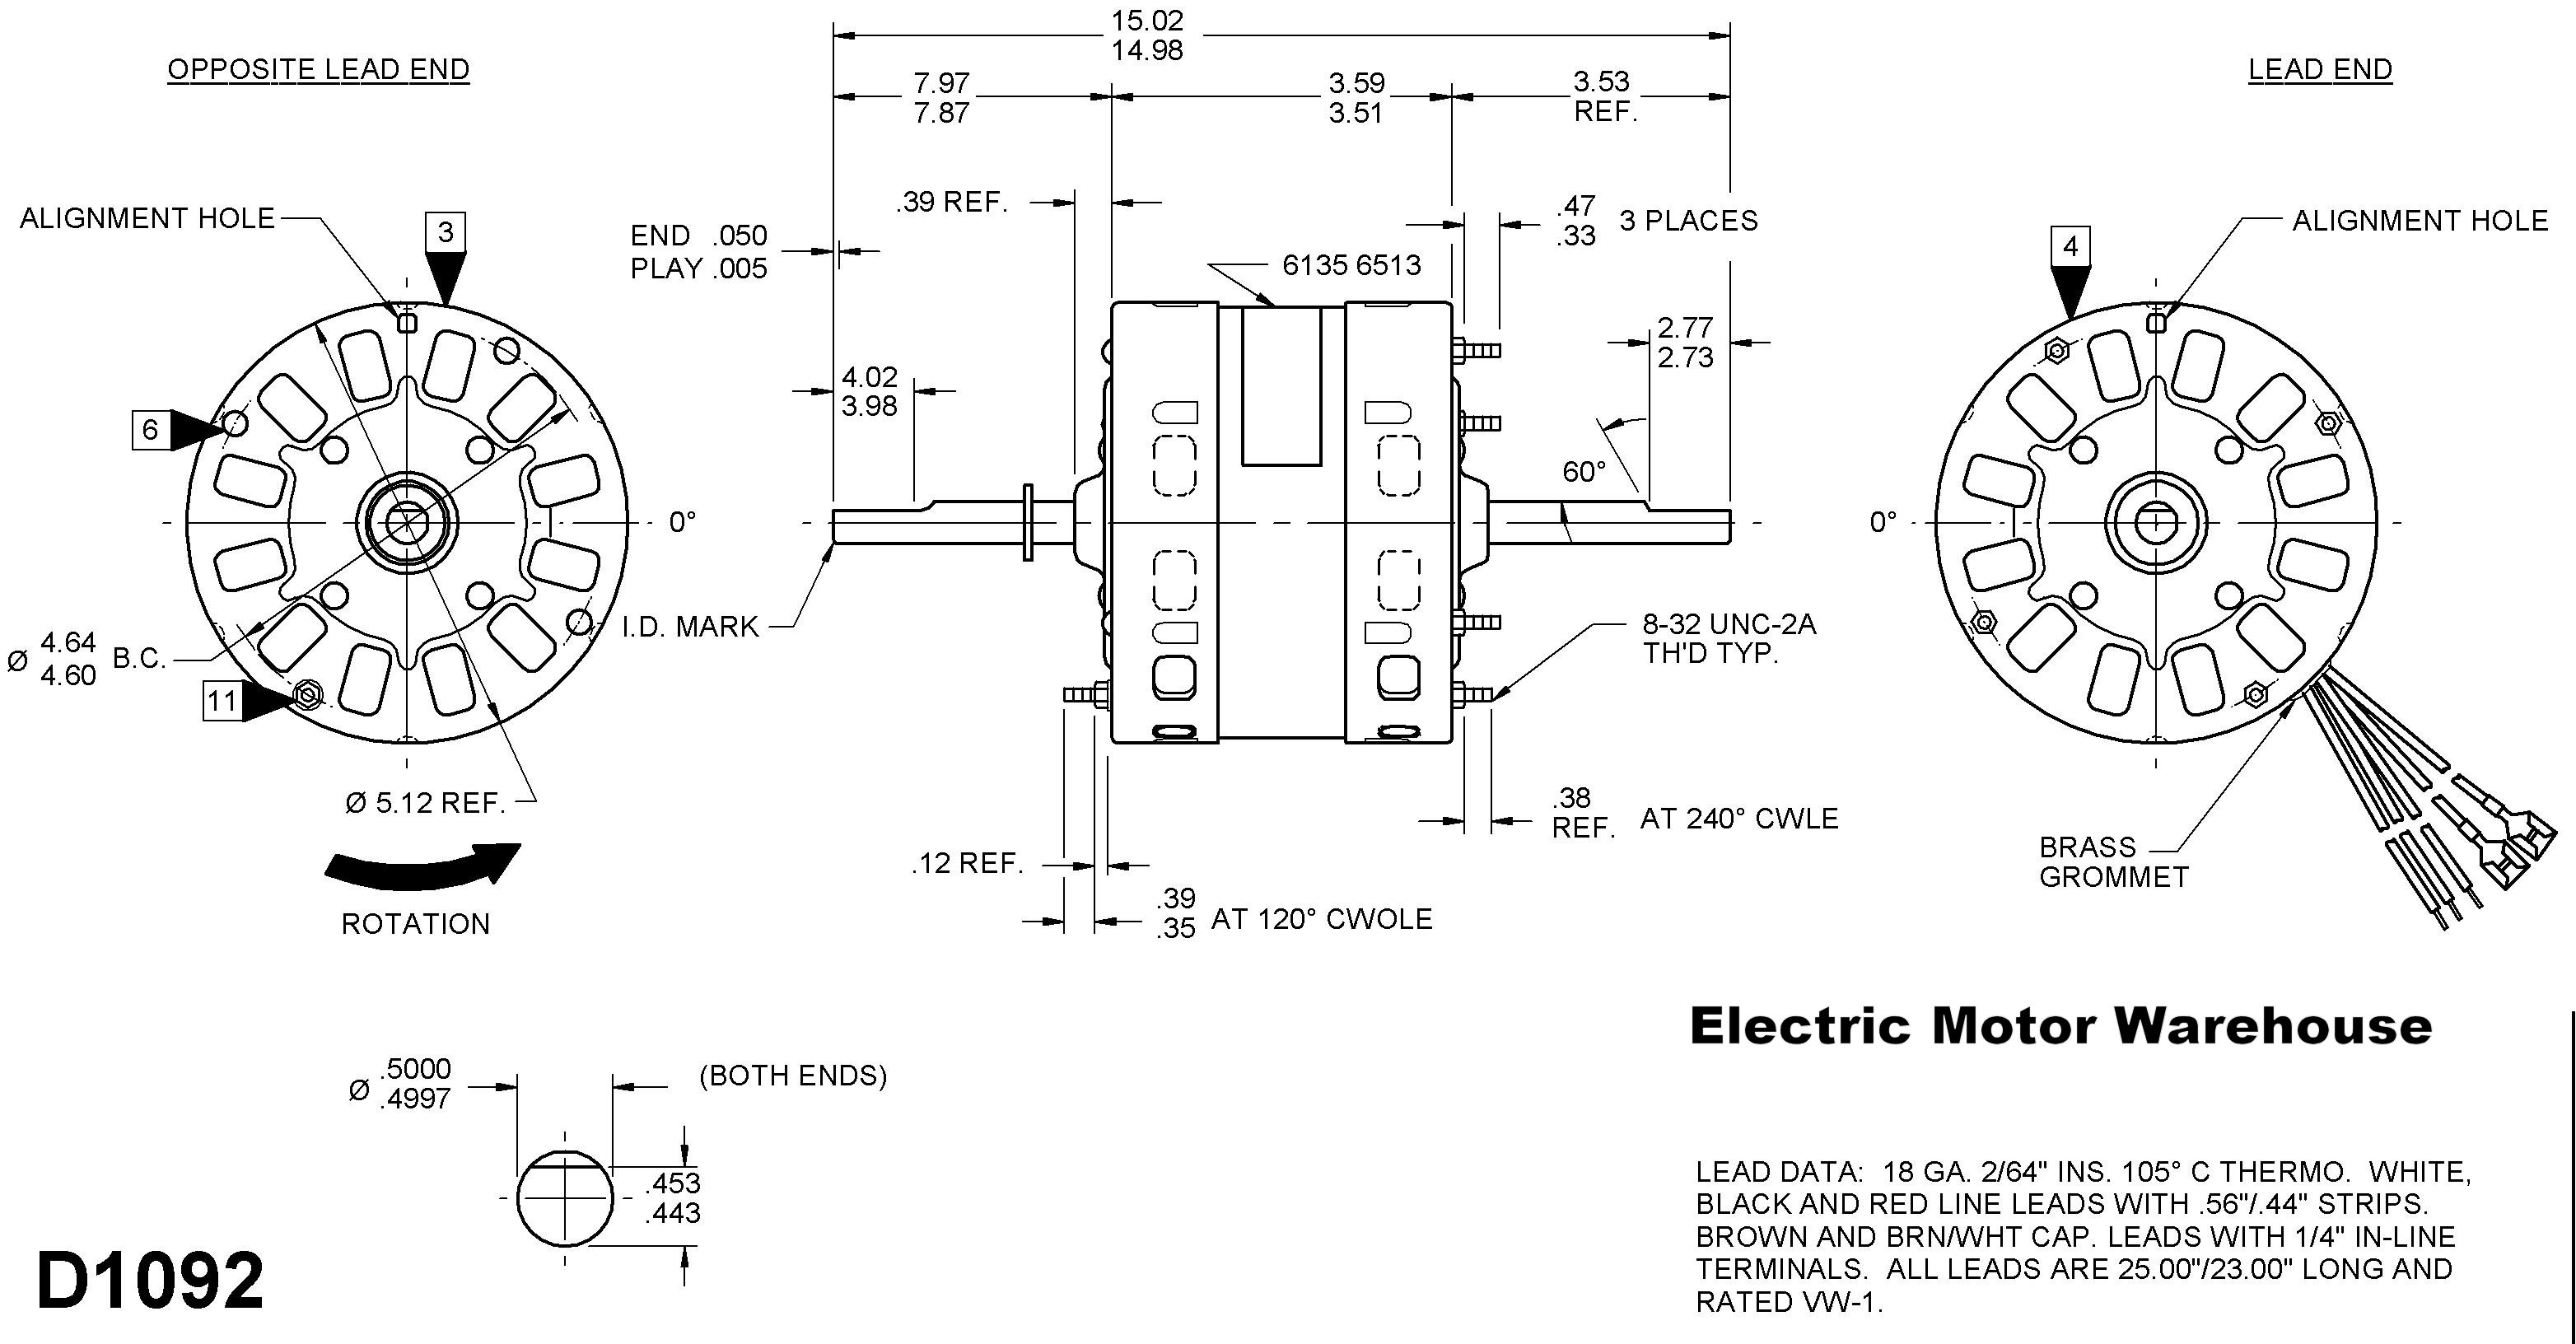 Ac Fan Motor 12v Electric Wiring - Wiring Diagram Online Us Motor Phase Wiring Diagram on general motors parts diagrams, 3 phase motor winding diagrams, scosche wiring harness diagrams, capacitor start motor diagrams, single phase capacitor motor diagrams, single phase 115v motor diagrams, 115 230 motor voltage change, house thermostat wiring diagrams, 2 hp marathon electric motors wiring diagrams, electric trailer brake wiring diagrams,